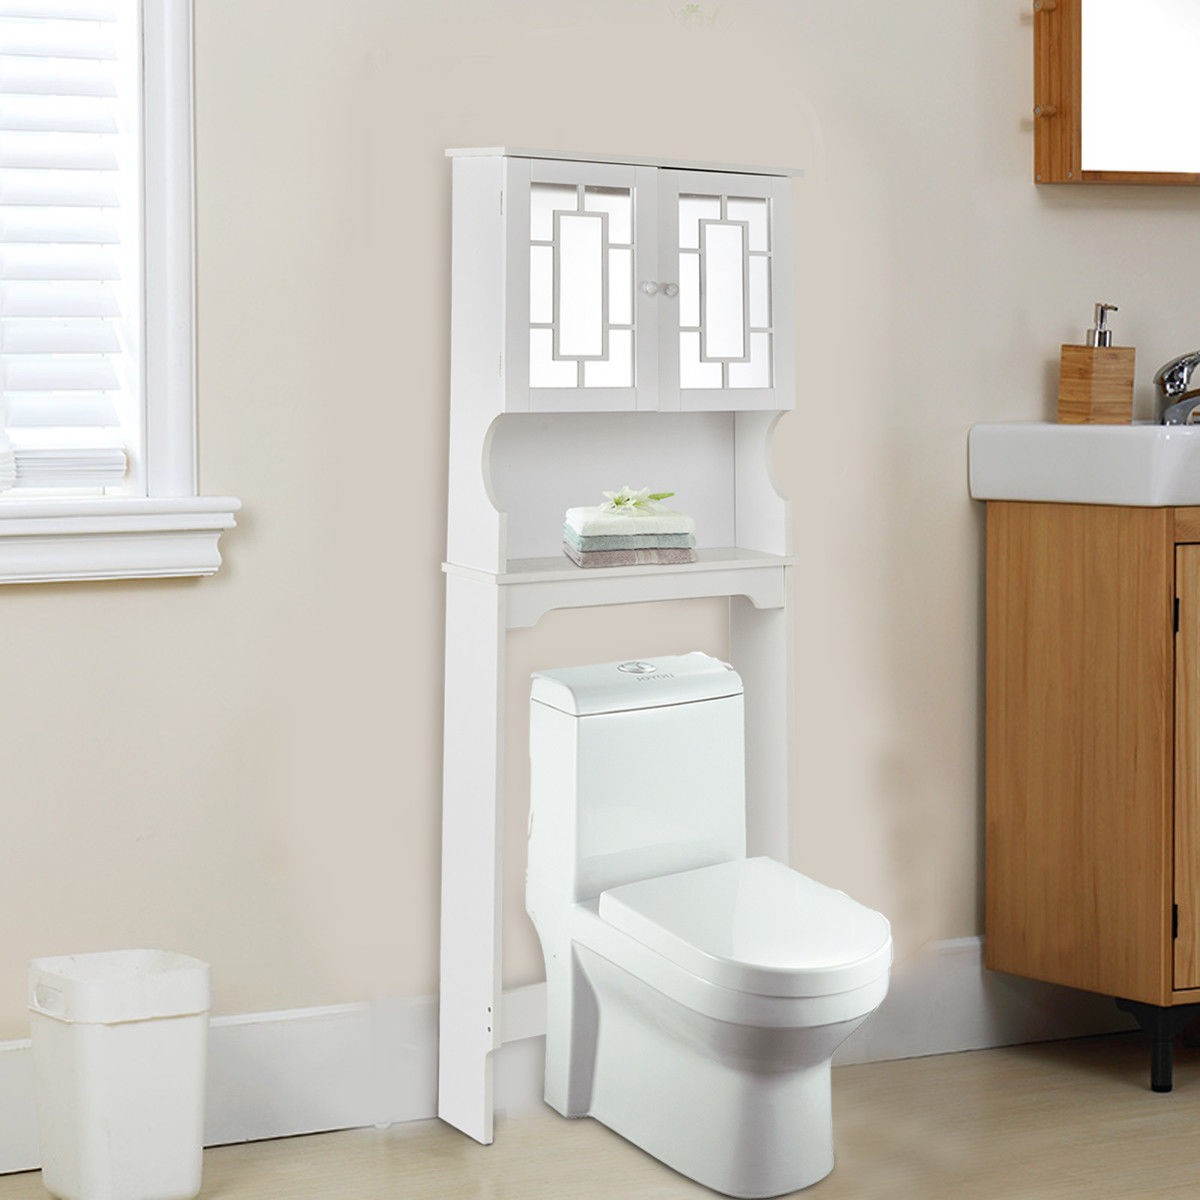 bathroom over toilet space saver storage cabinet shelf